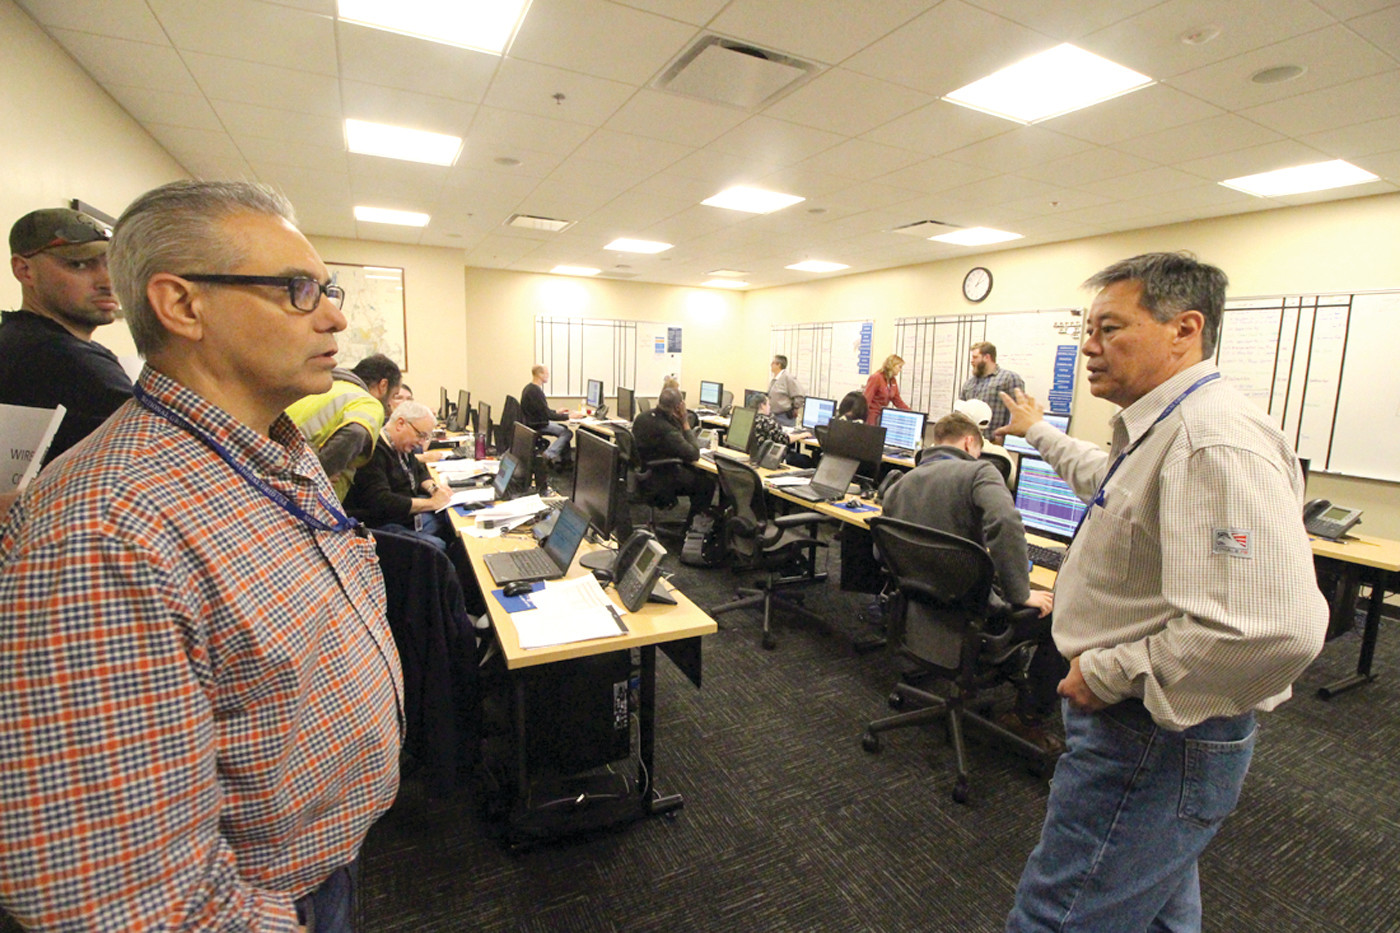 CENTER OF ACTIVITY: Nate Kocon (at right) directed those manning phones at the downed wire room of the National Grid storm center.